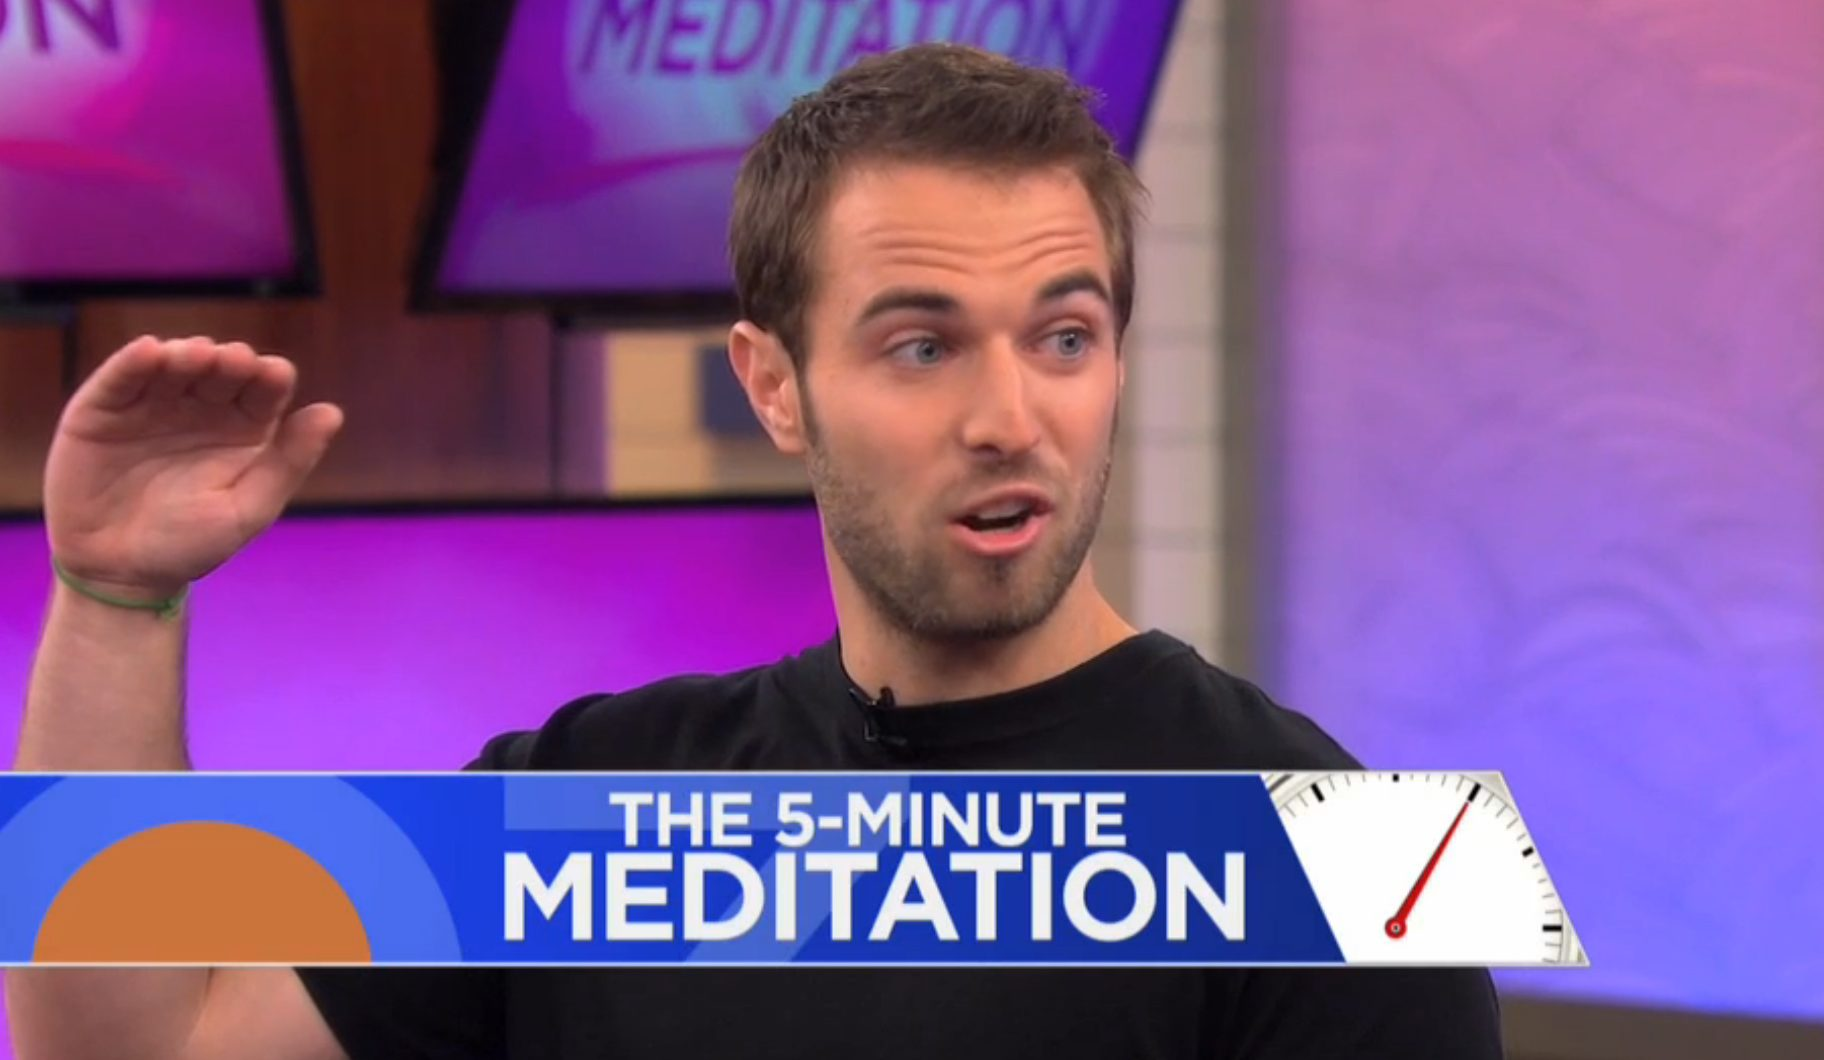 The Dr. Oz Show : Cory sharing benefits of daily 5-Minute Meditation